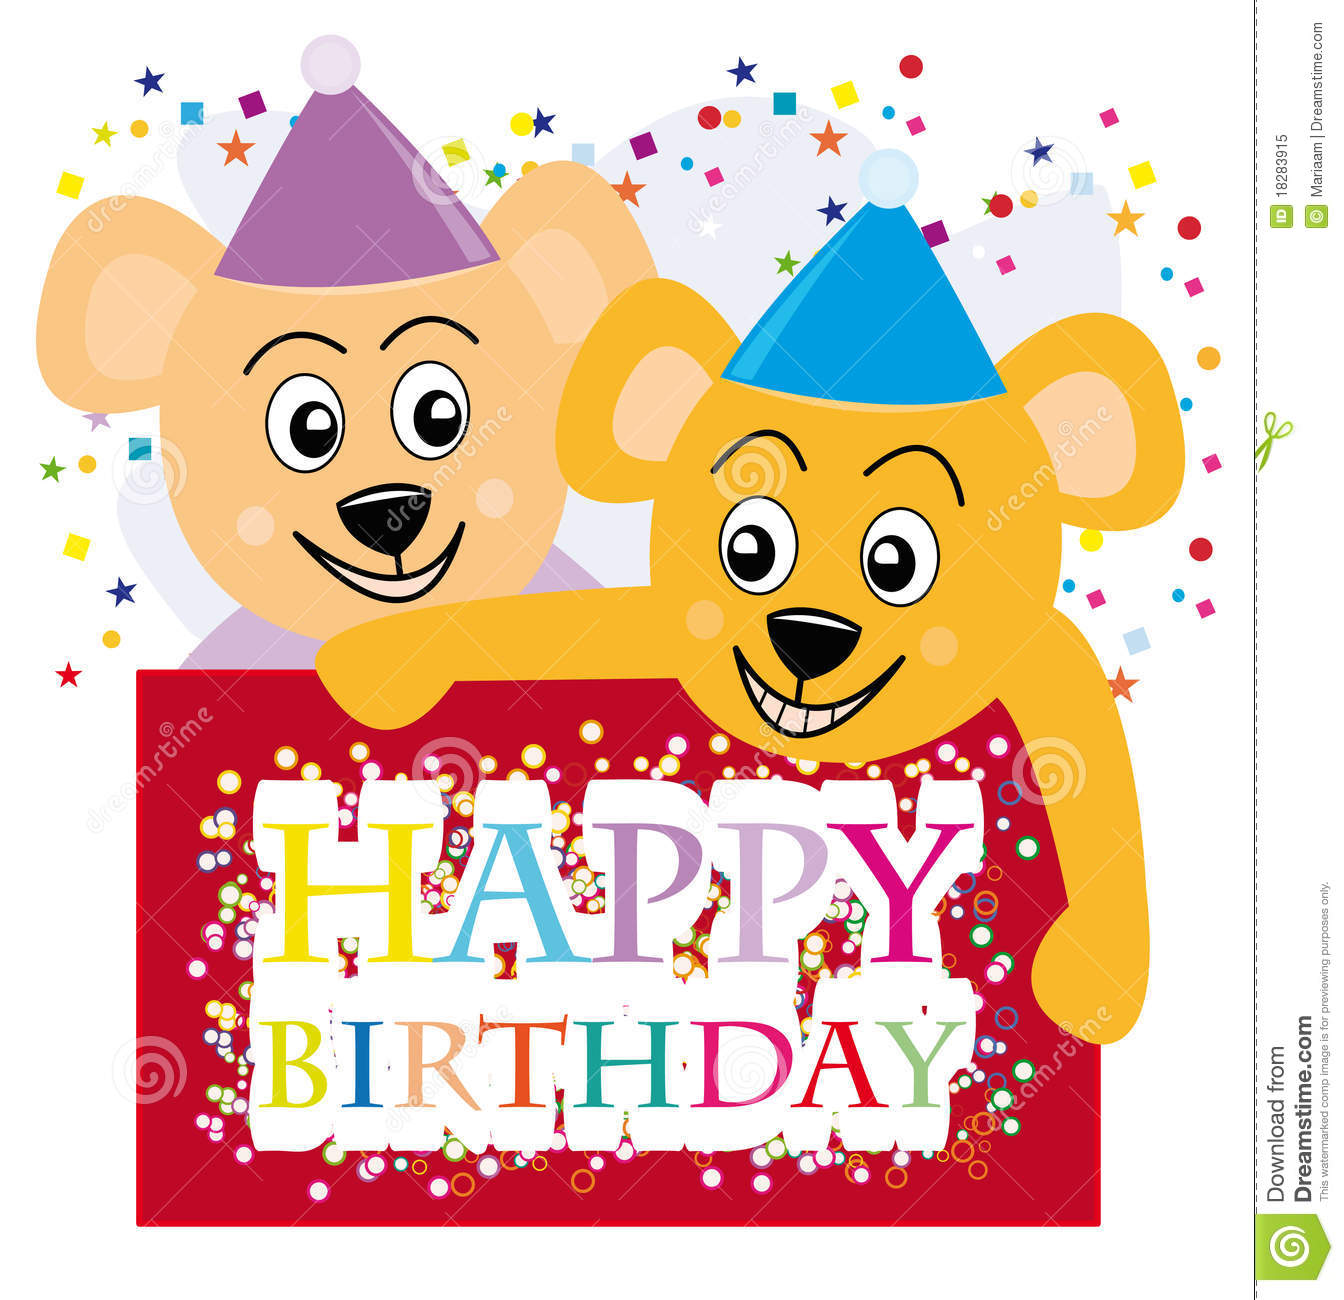 Teddy Bears Wishing A Happy Birthday Royalty Free Stock Photo ...